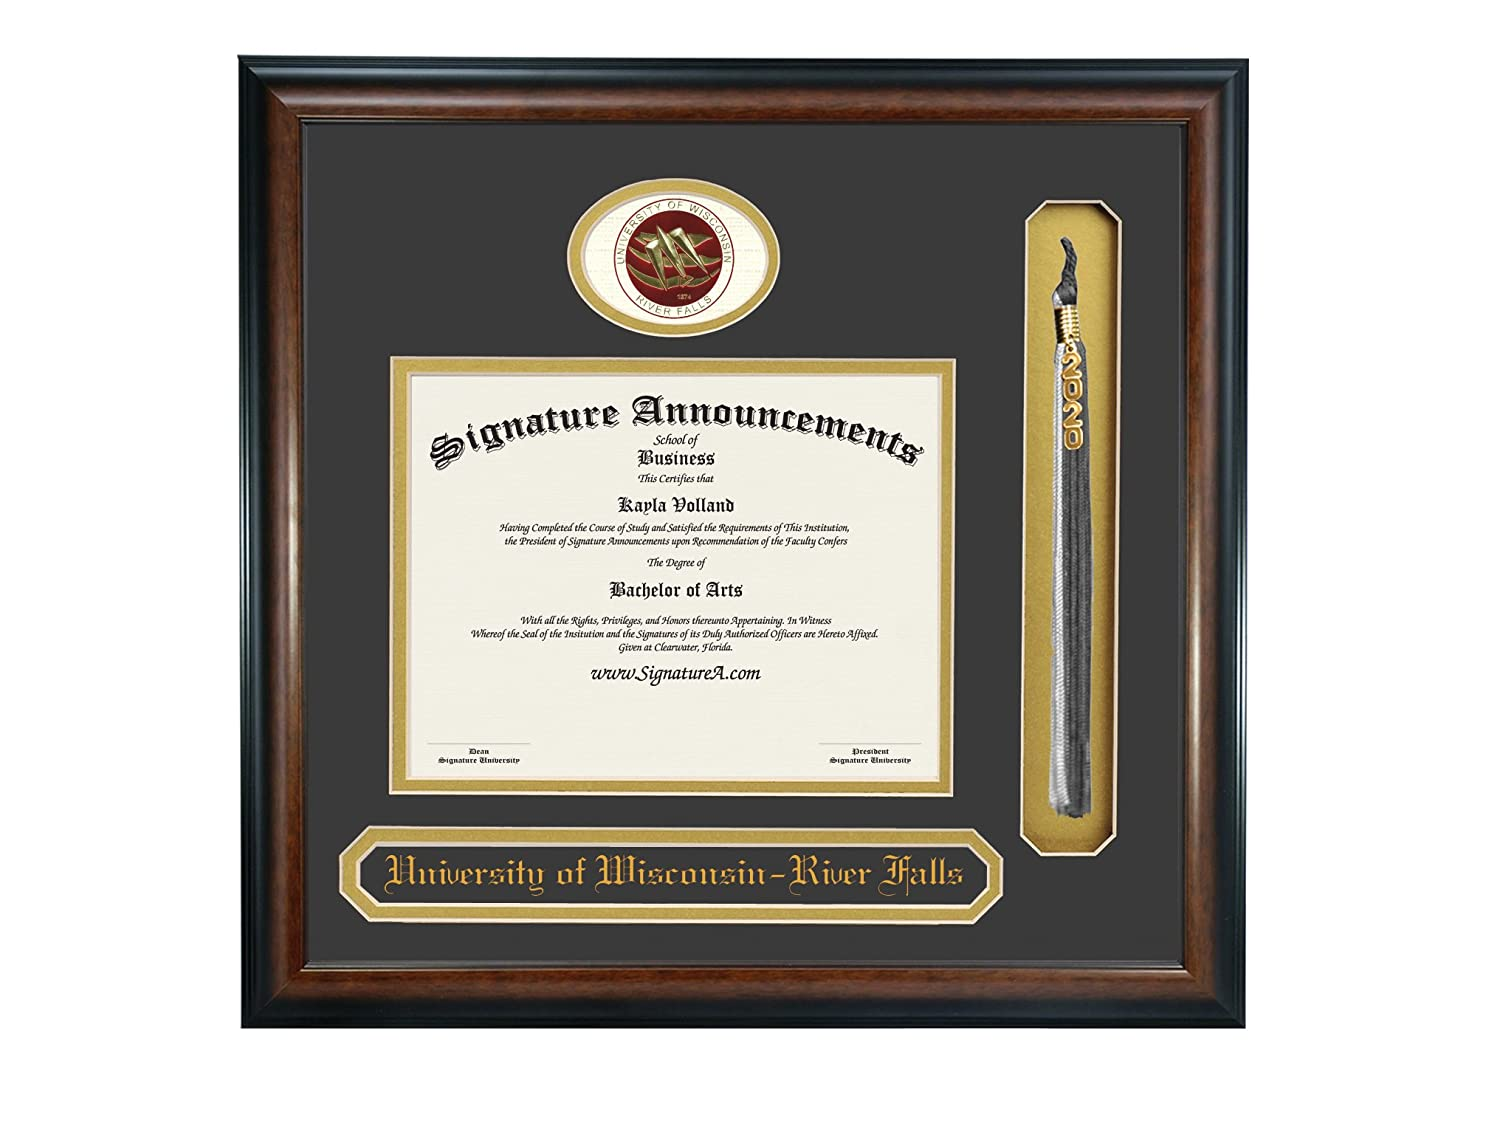 Sculpted Foil Seal Name /& Tassel Graduation Diploma Frame 16 x 16 Matte Mahogany Signature Announcements University of Wisconsin-River Falls Undergraduate